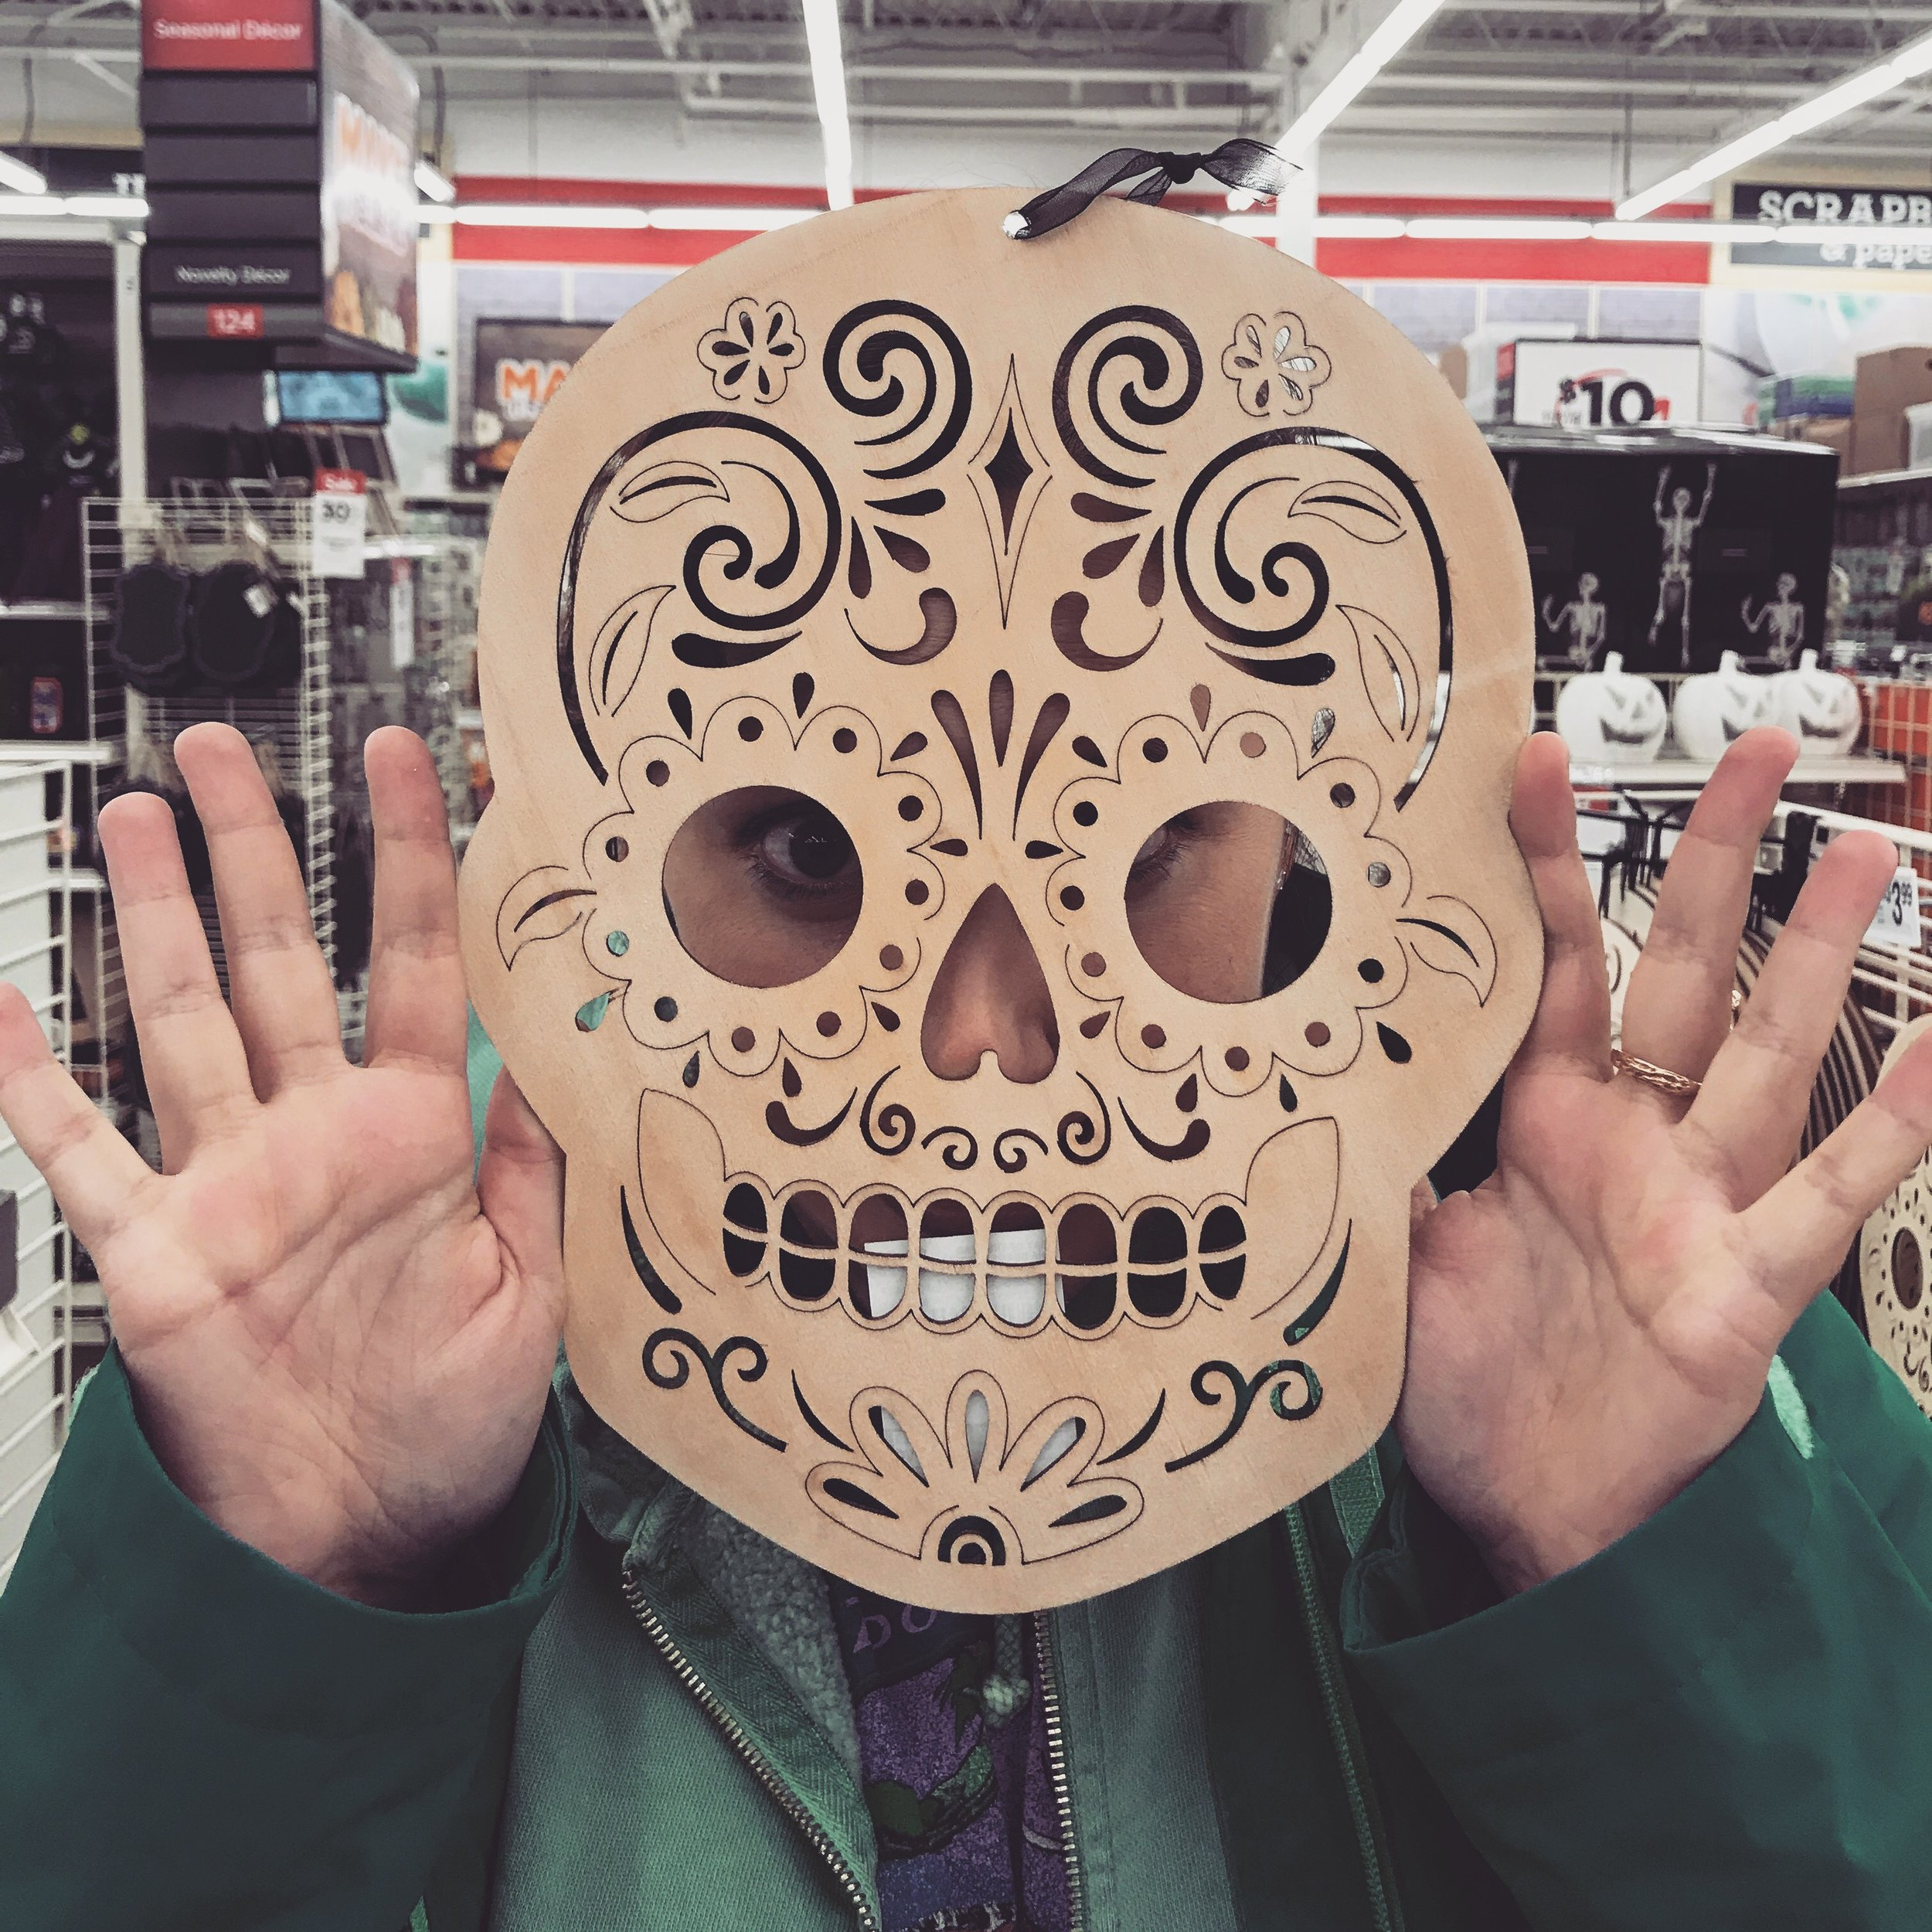 (Dia de los muertos symbols have become so widespread that even craft stores sell ones you can decorate yourself)